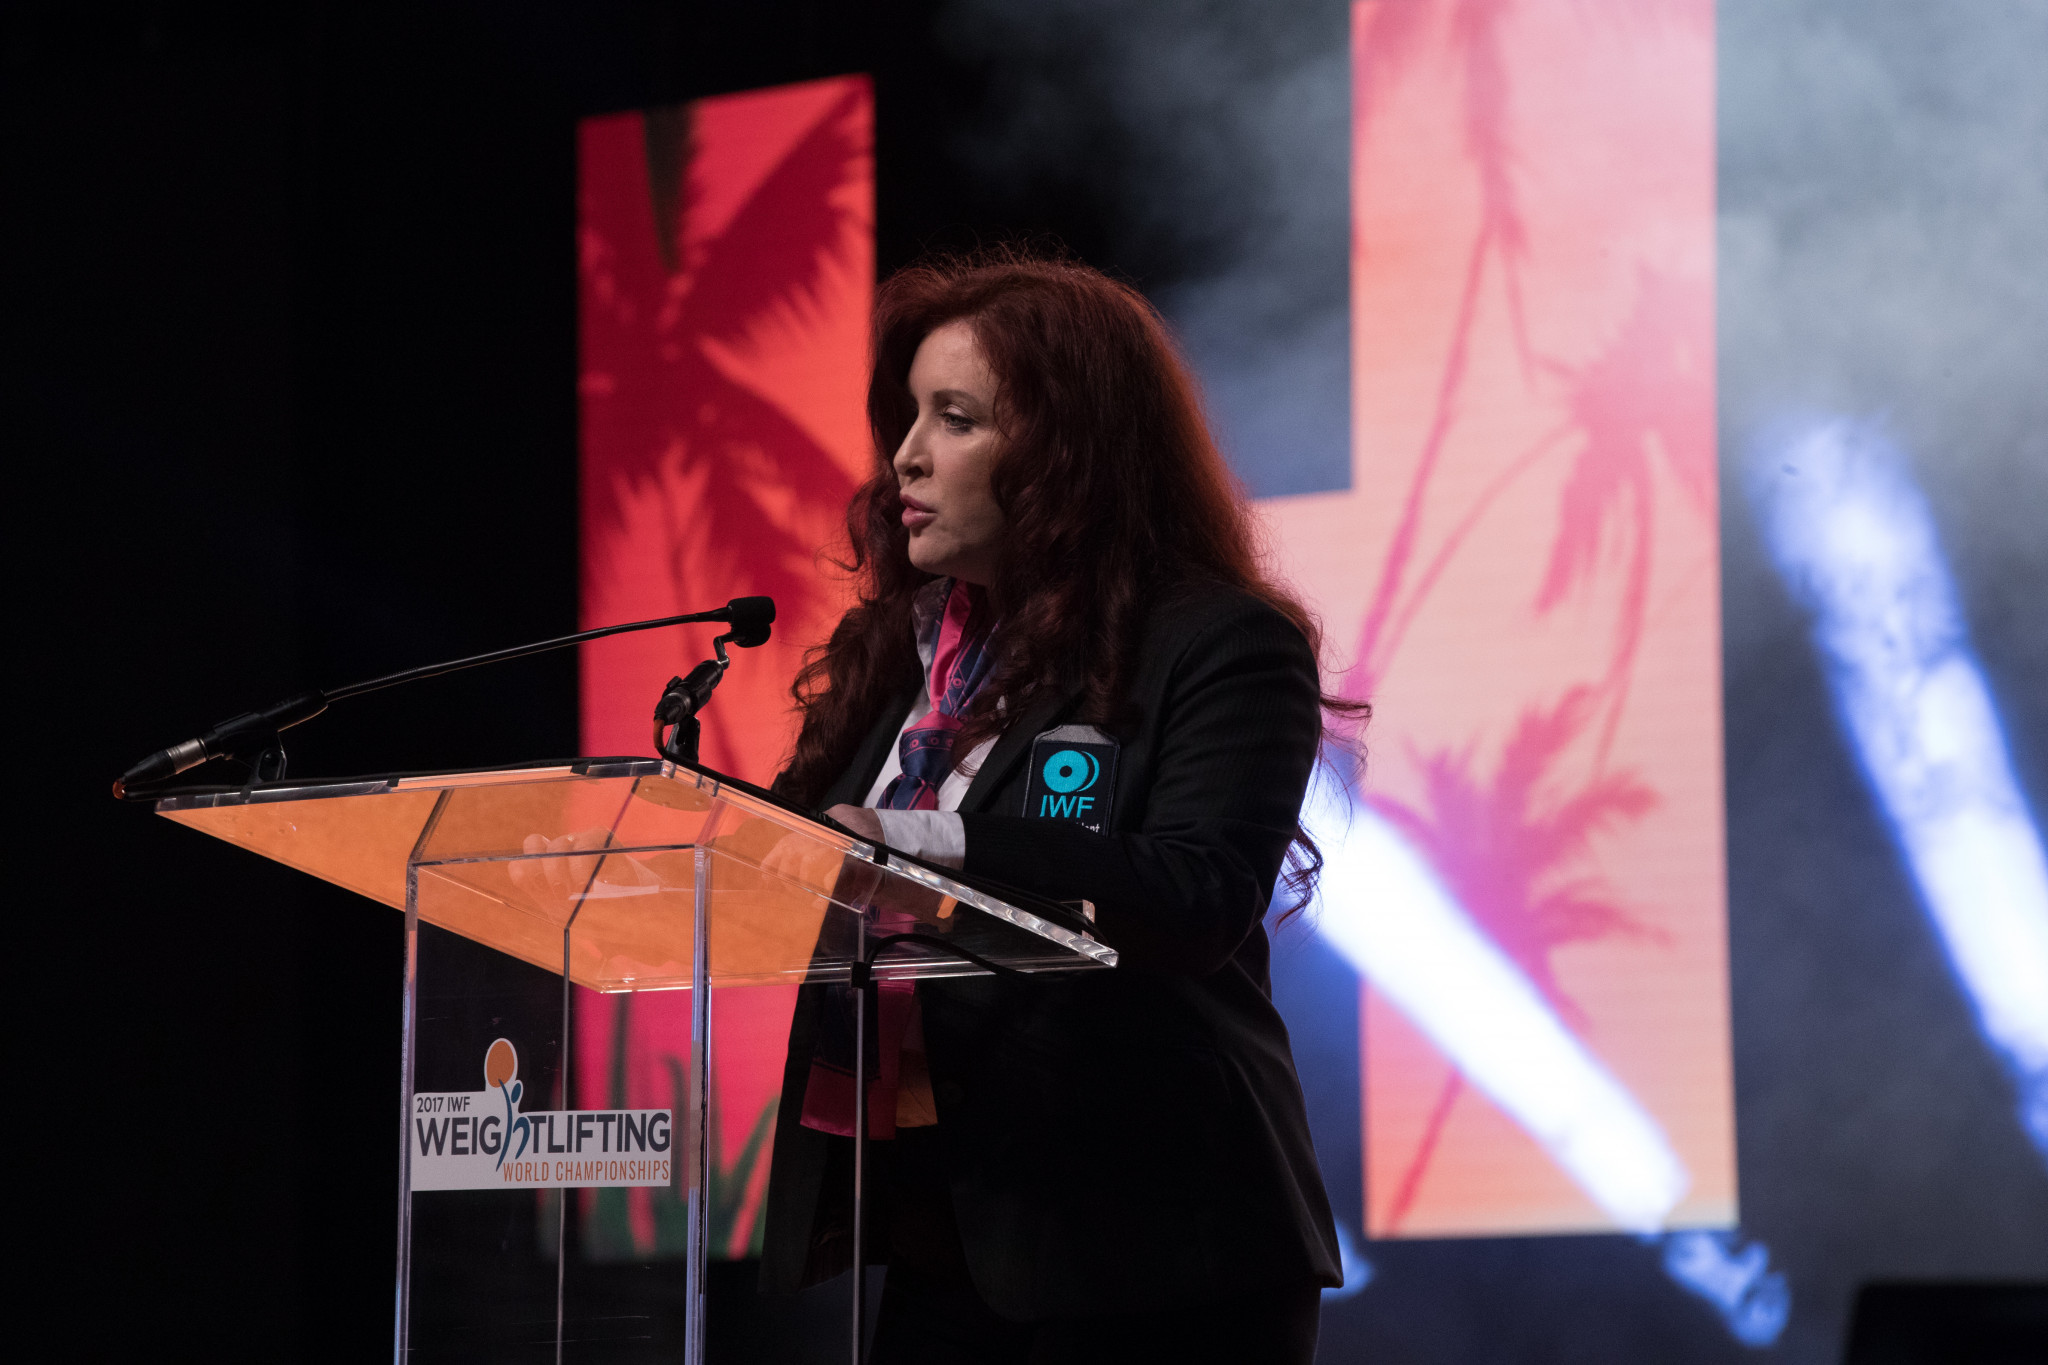 Ursula Papandrea has publicly declared her intention to regain the leadership of the International Weightlifting Federation ©IWF